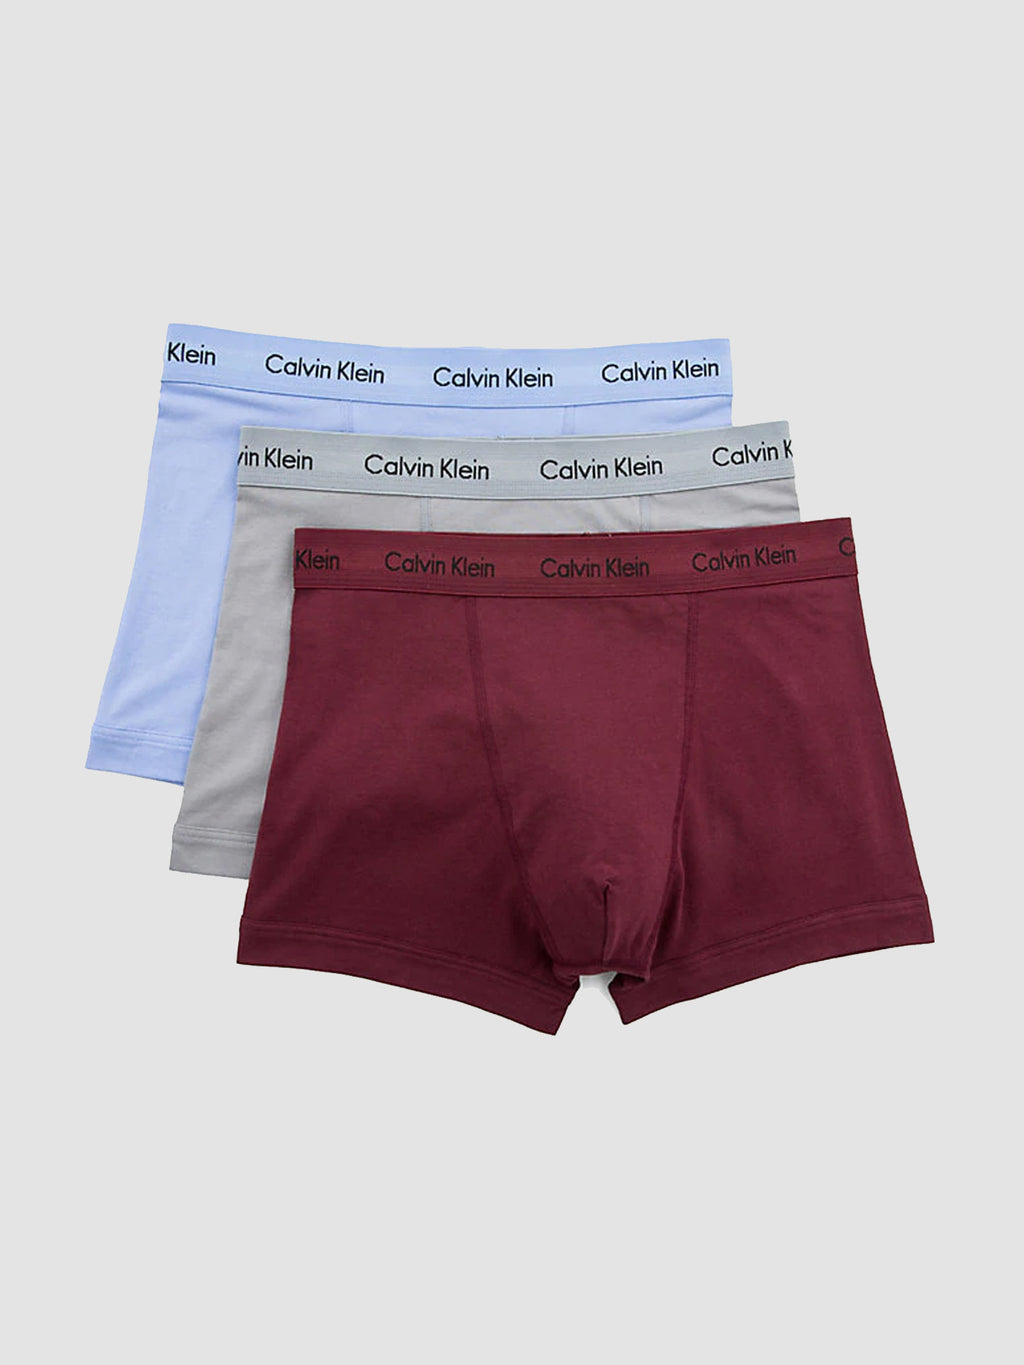 Calvin Klein Boxers 3 Pack Silver Blue Bergundy